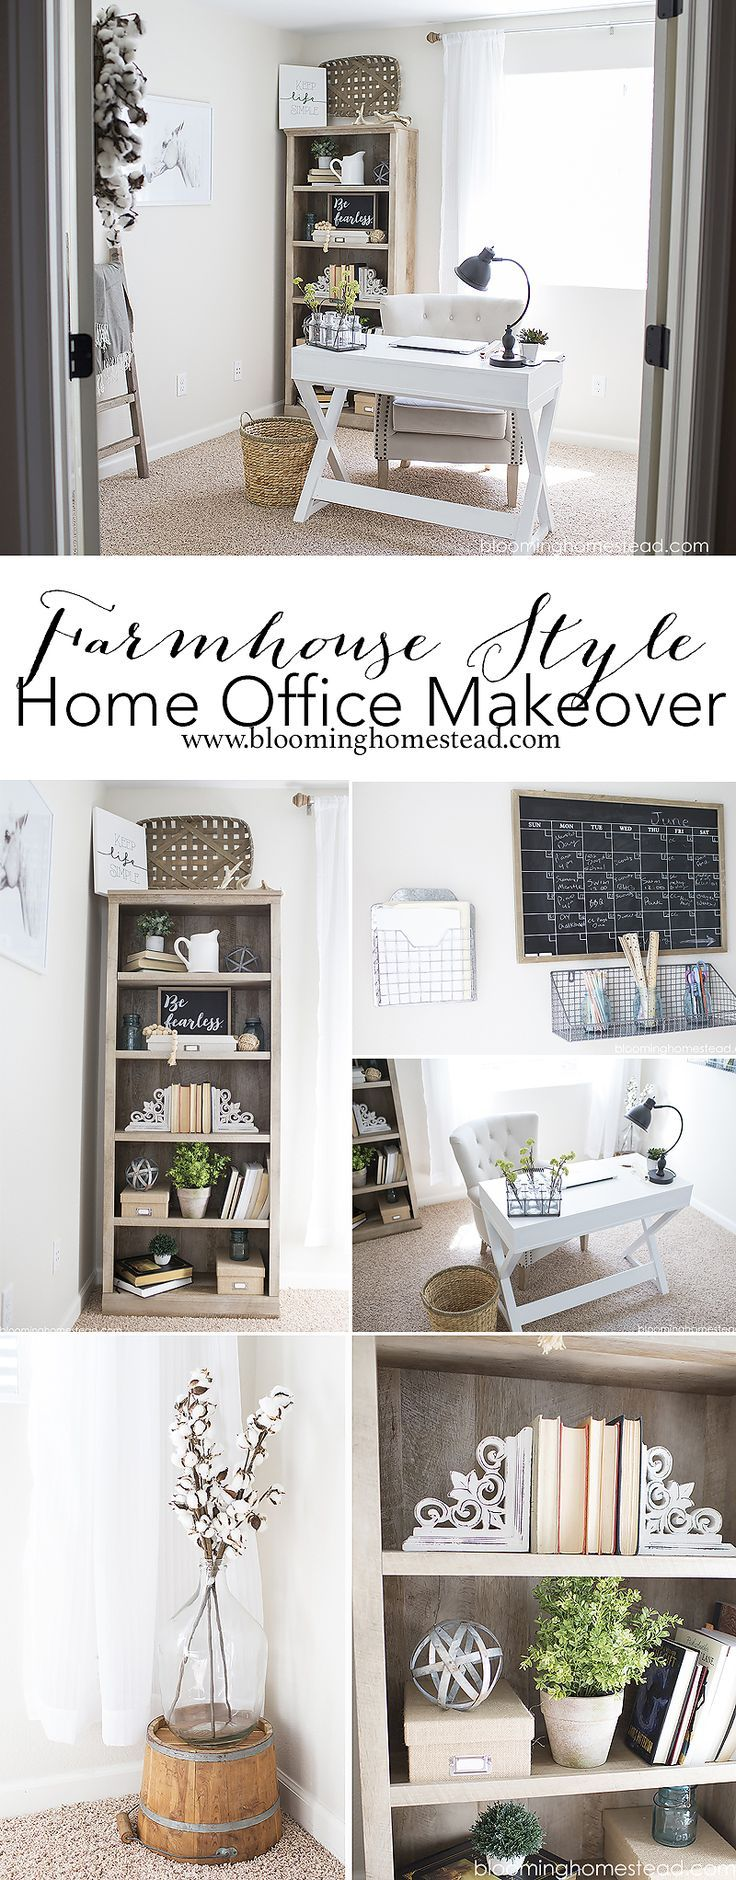 55 best Home Office Inspiration images on Pinterest | Office spaces ...